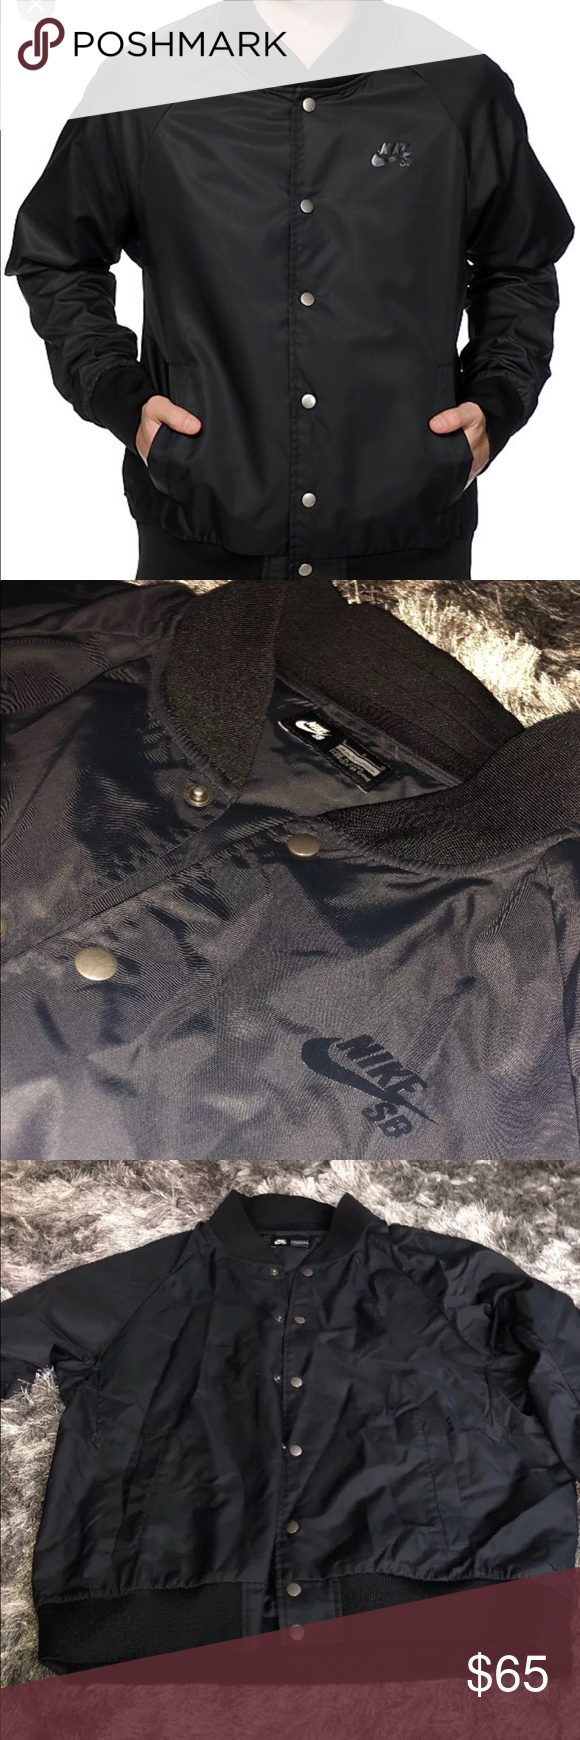 9beb0d896f5f Nike SB Davis Satin Bomber Jacket sz L Nike SB jacket preowned. There is  some wear on the inside sleeves (pictured). Nothing on the outside.